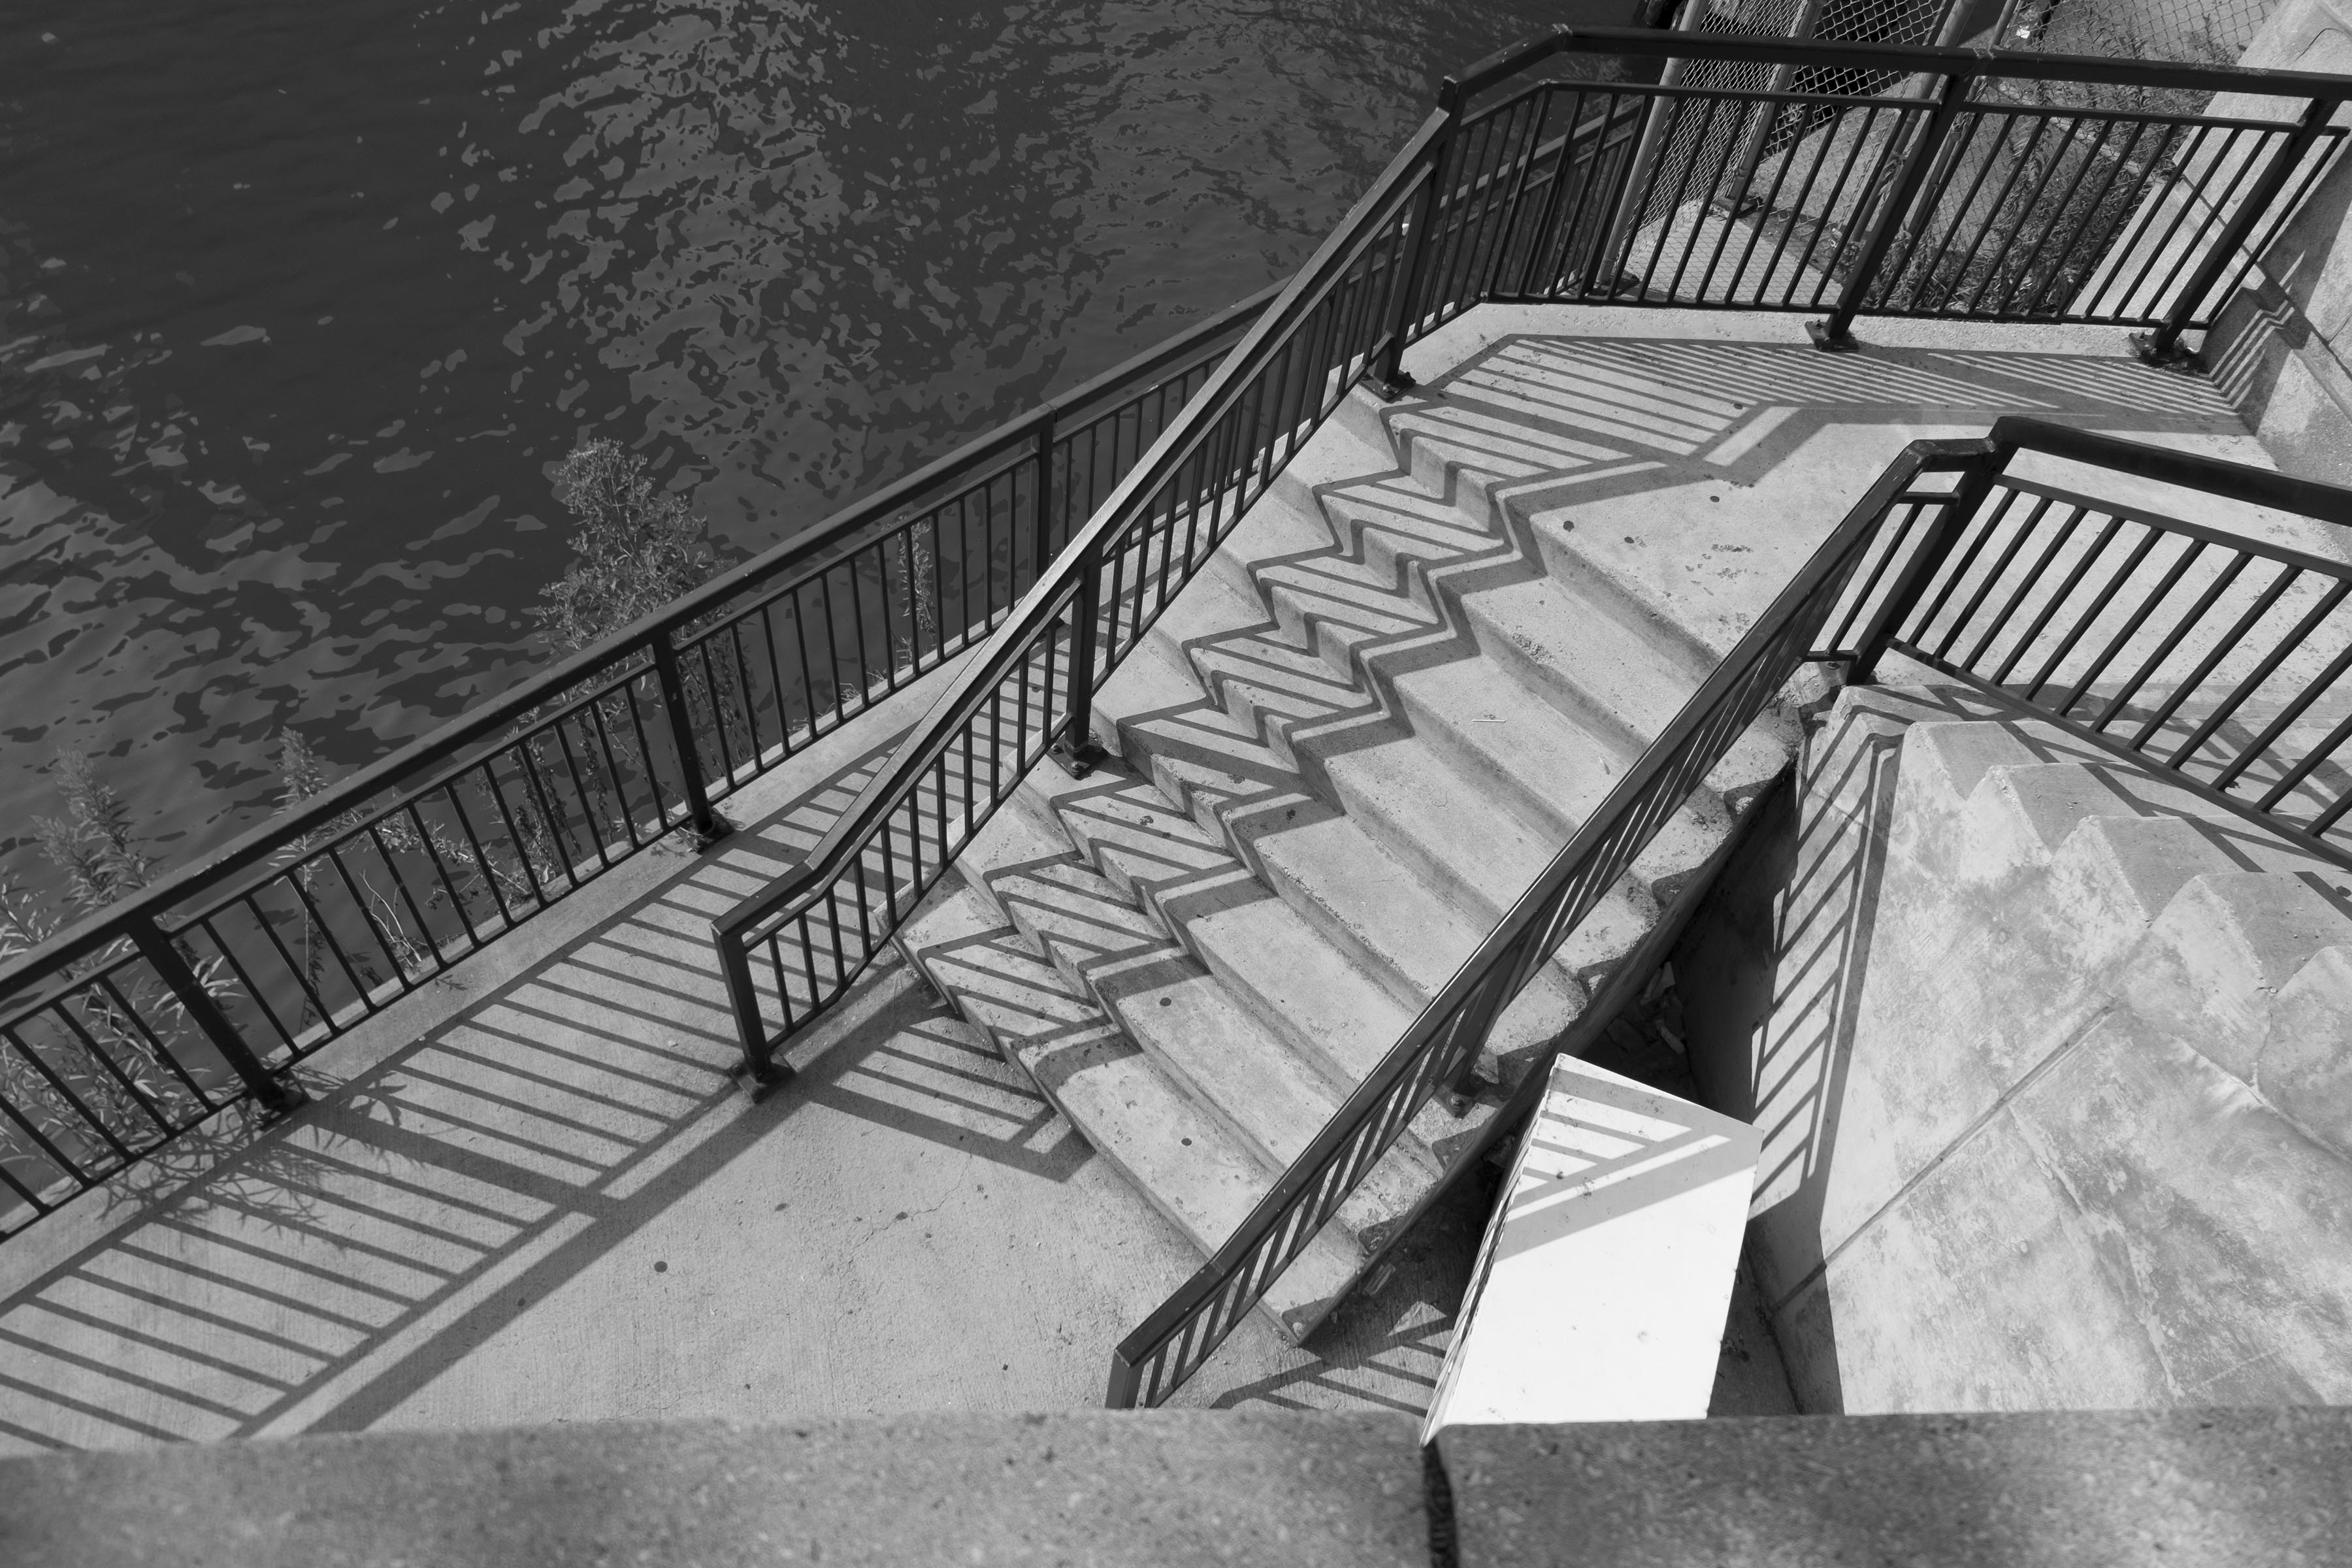 A photograph of a staircase down to a riverside. The stair railings are casting stark shadows on the stairs.